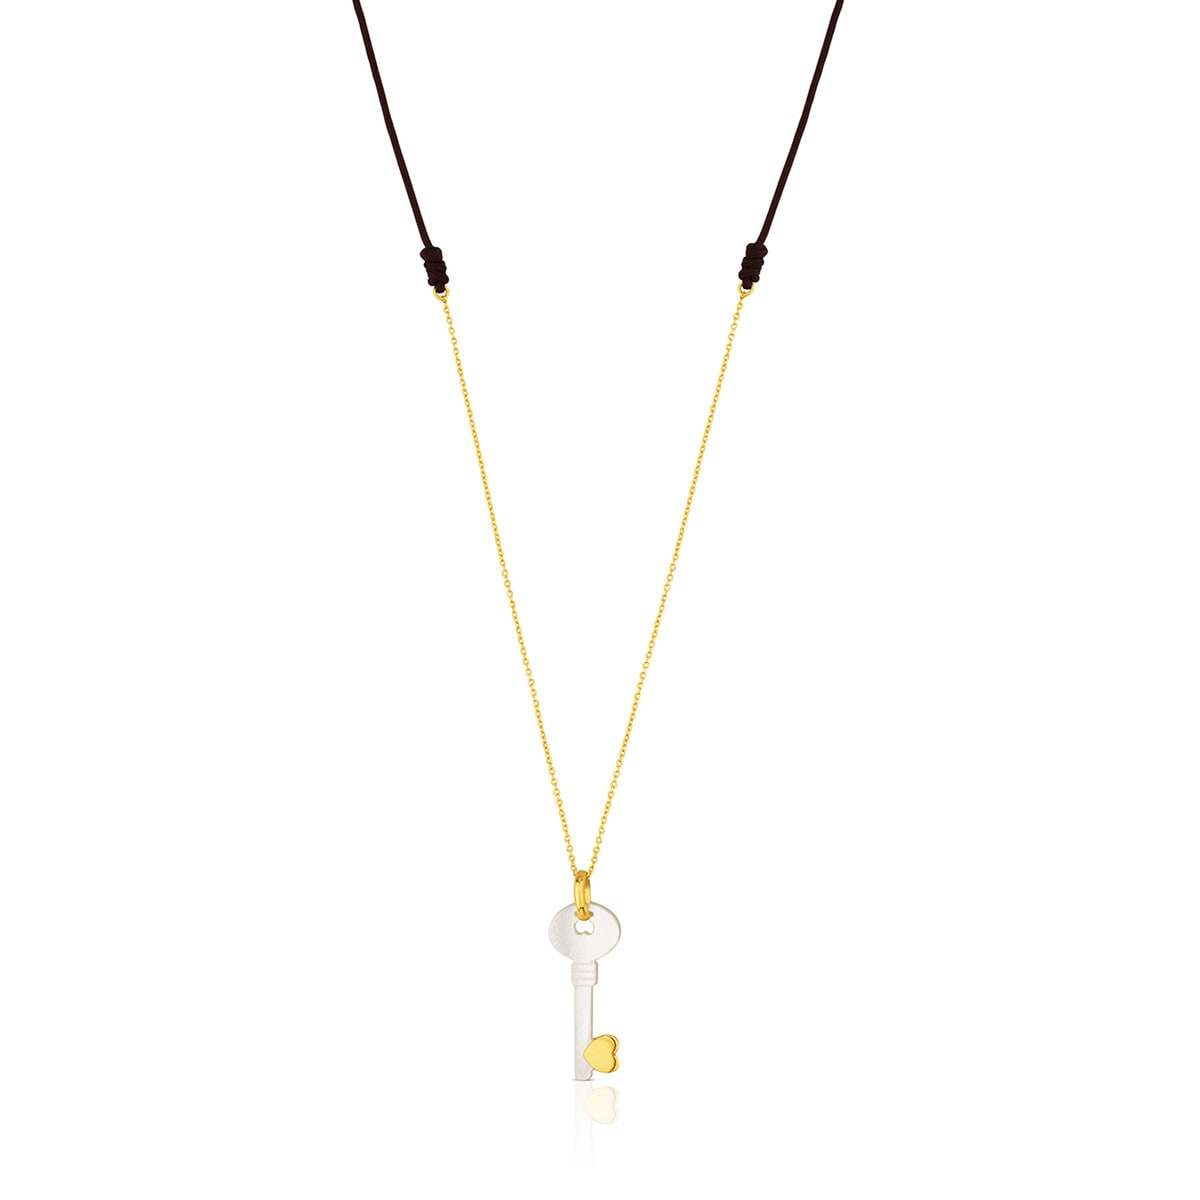 06623e2d8 Gold Valentine's Day Necklace with Mother of Pearl - Tous Site US